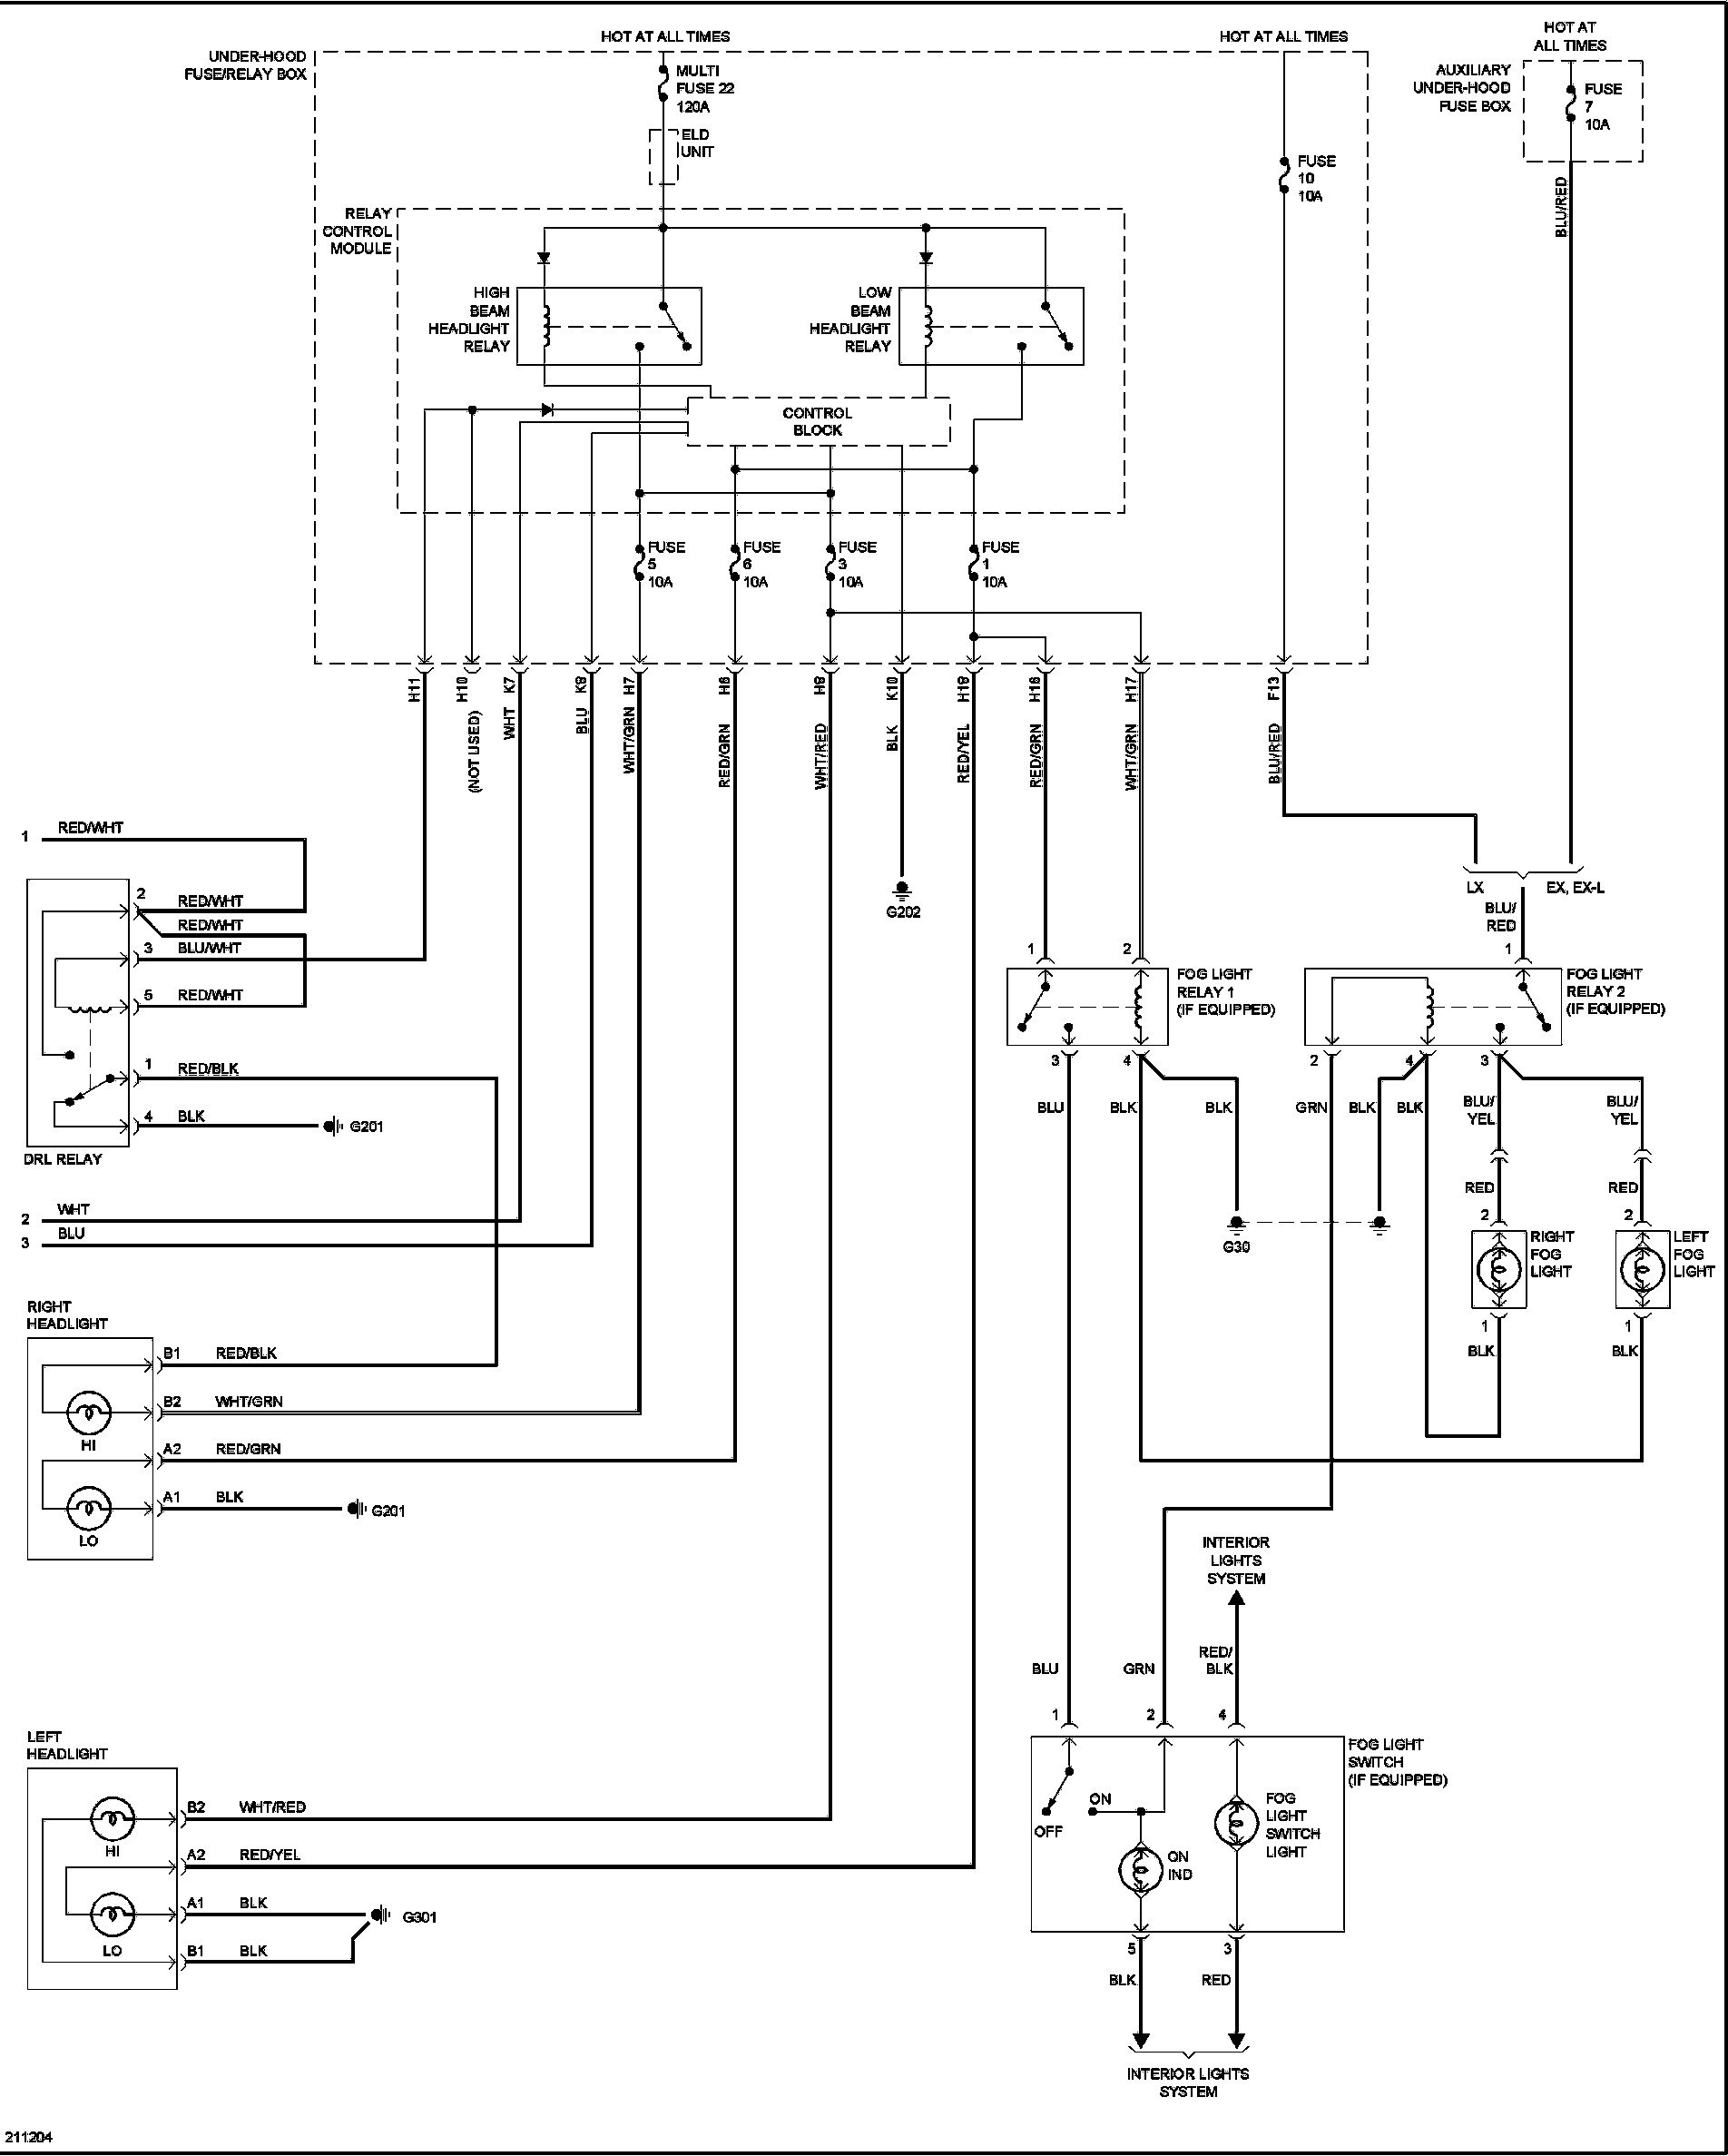 hight resolution of 2001 honda odyssey wiring diagram wiring diagram centrehonda odyssey wiring harness wiring diagrams konsult2001 odyssey wiring